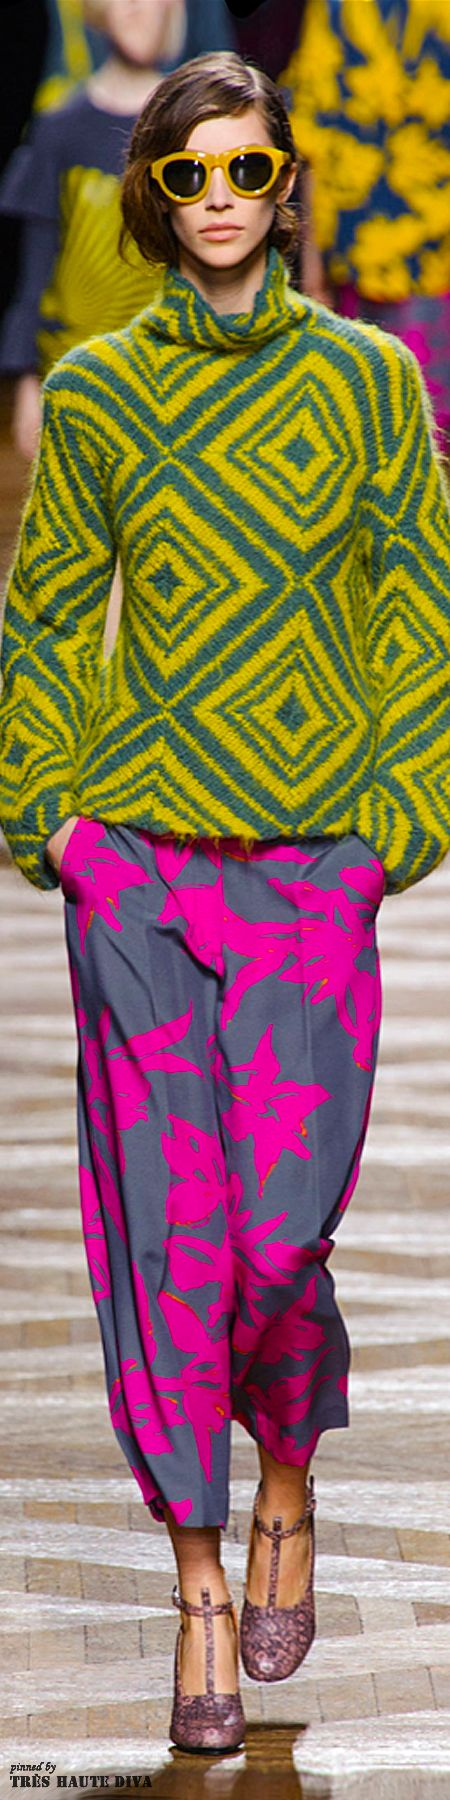 Paris Fashion Week: Dries Van Noten Fall/Winter 2014 RTW what is it about bold colour and mad patterns...❤️life